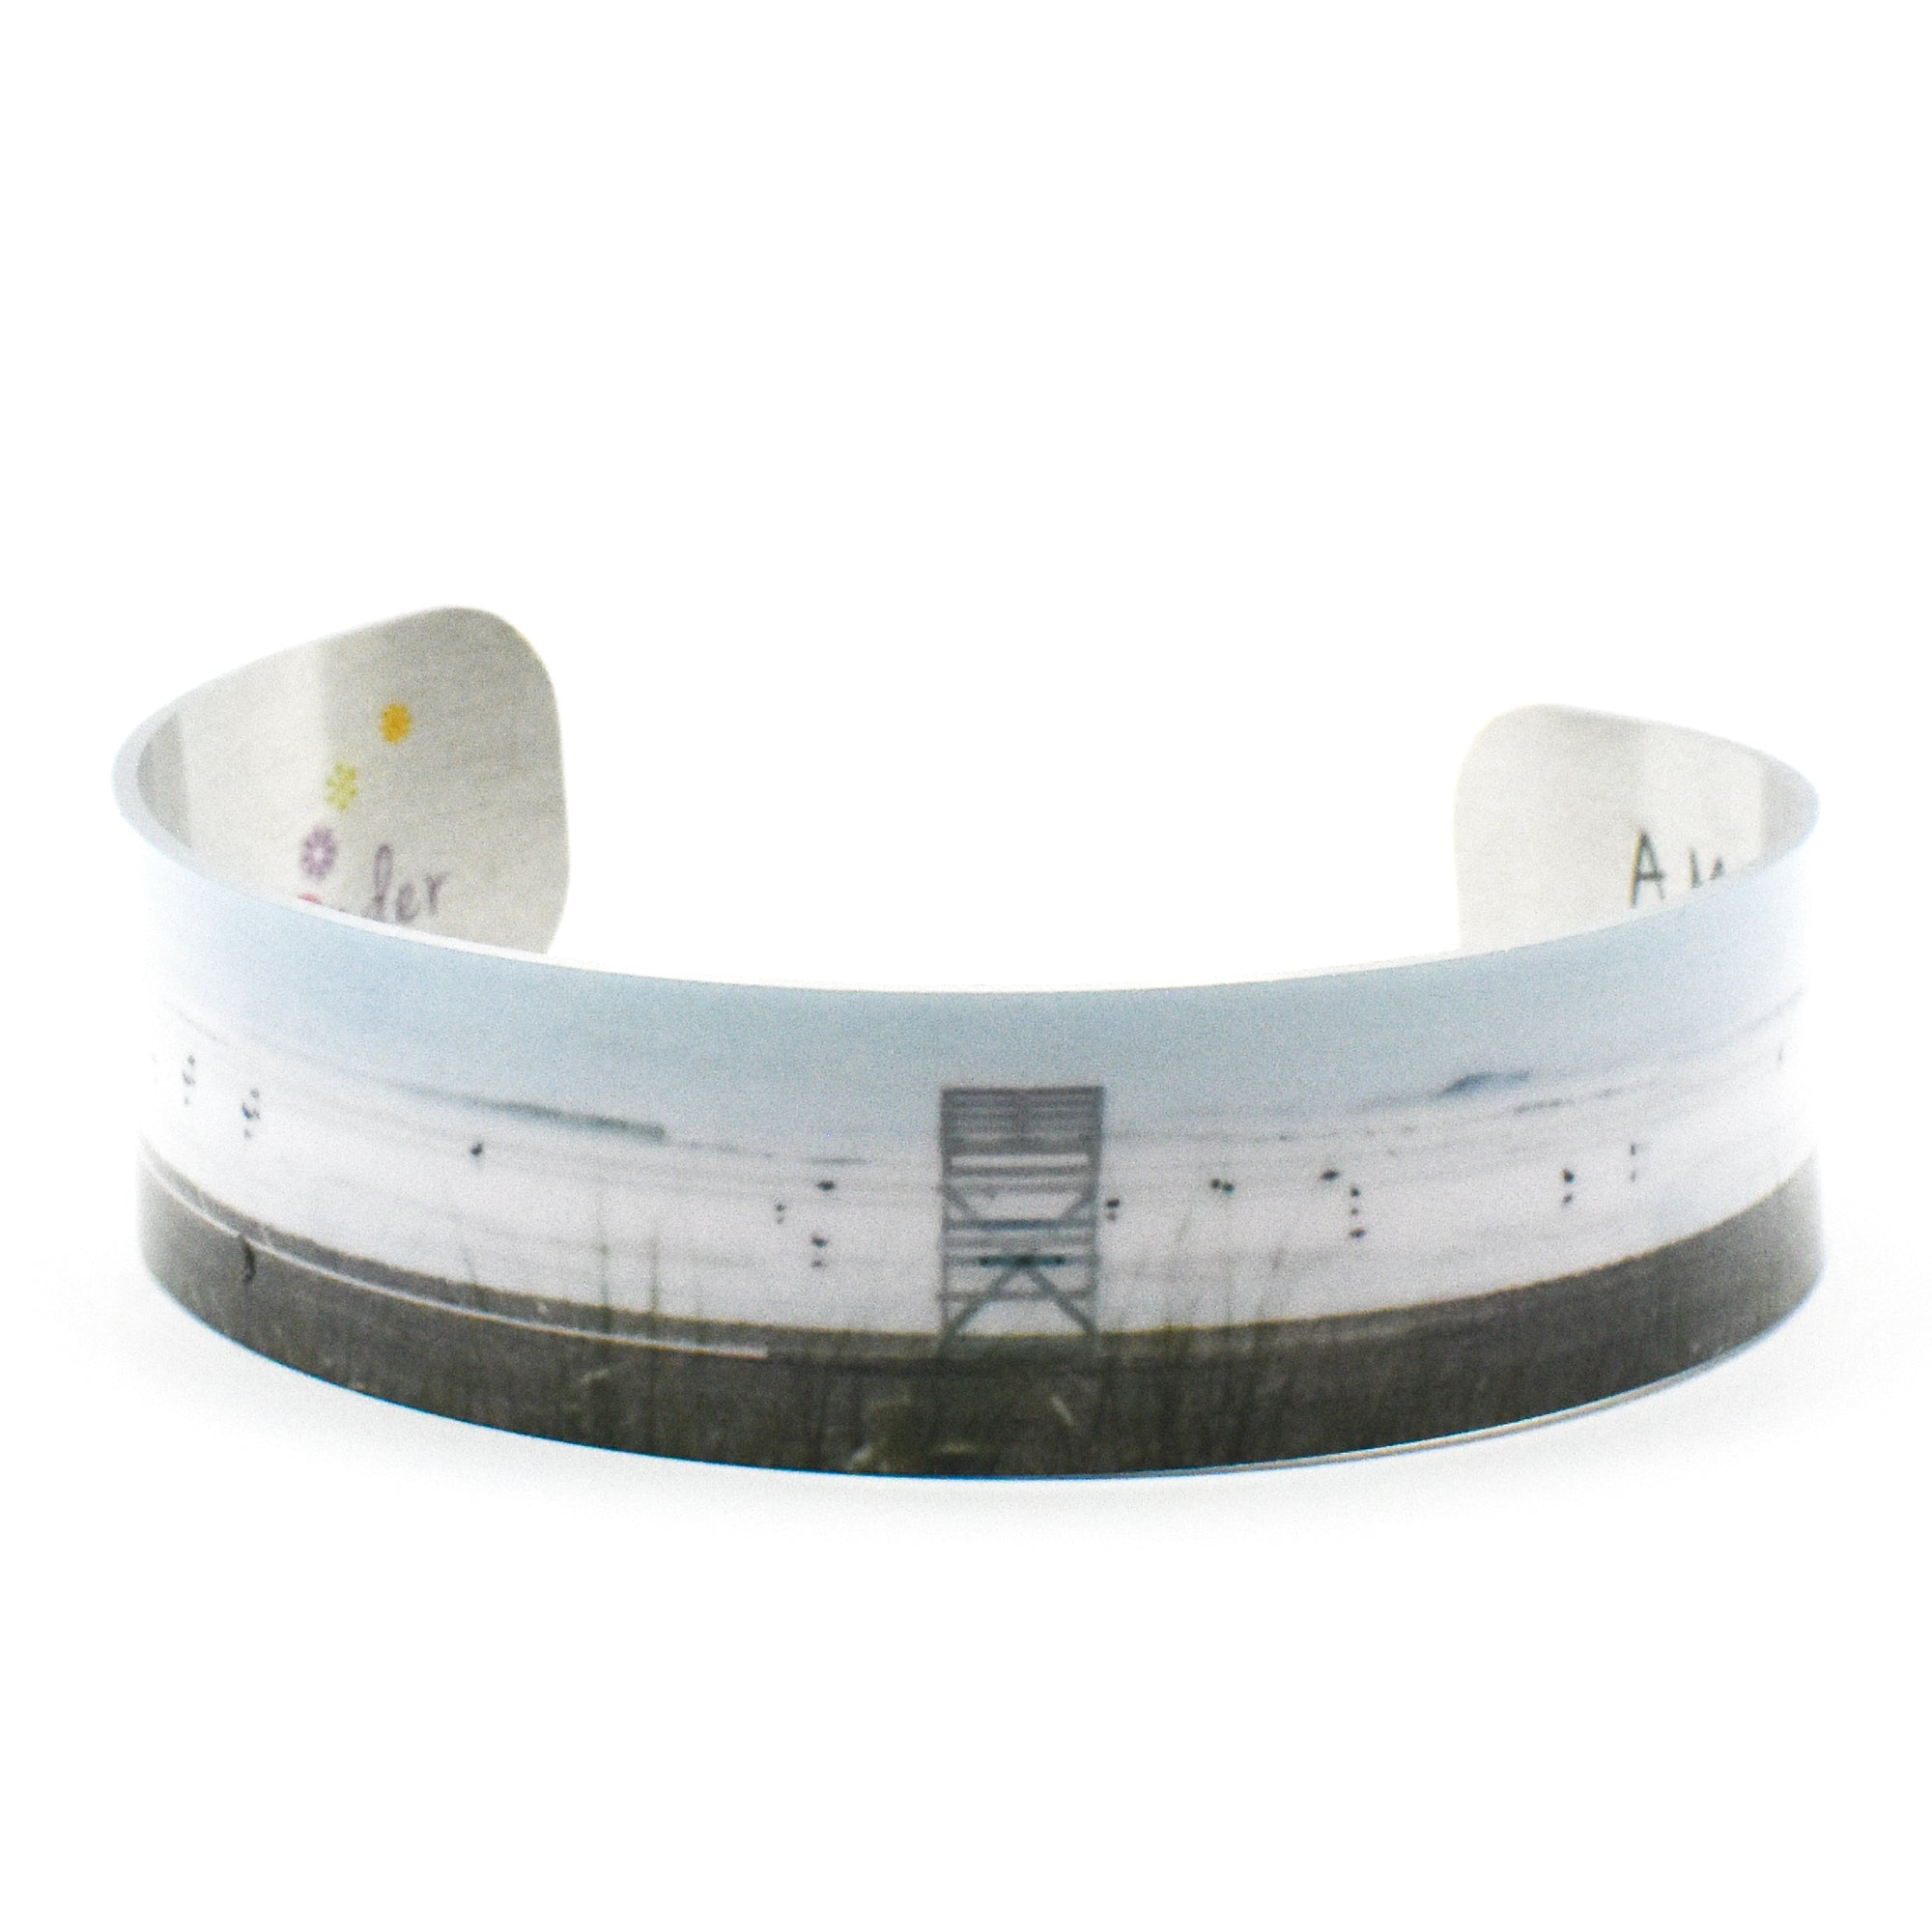 Standard view of Off Duty narrow cuff bracelet | Wear the Wonder